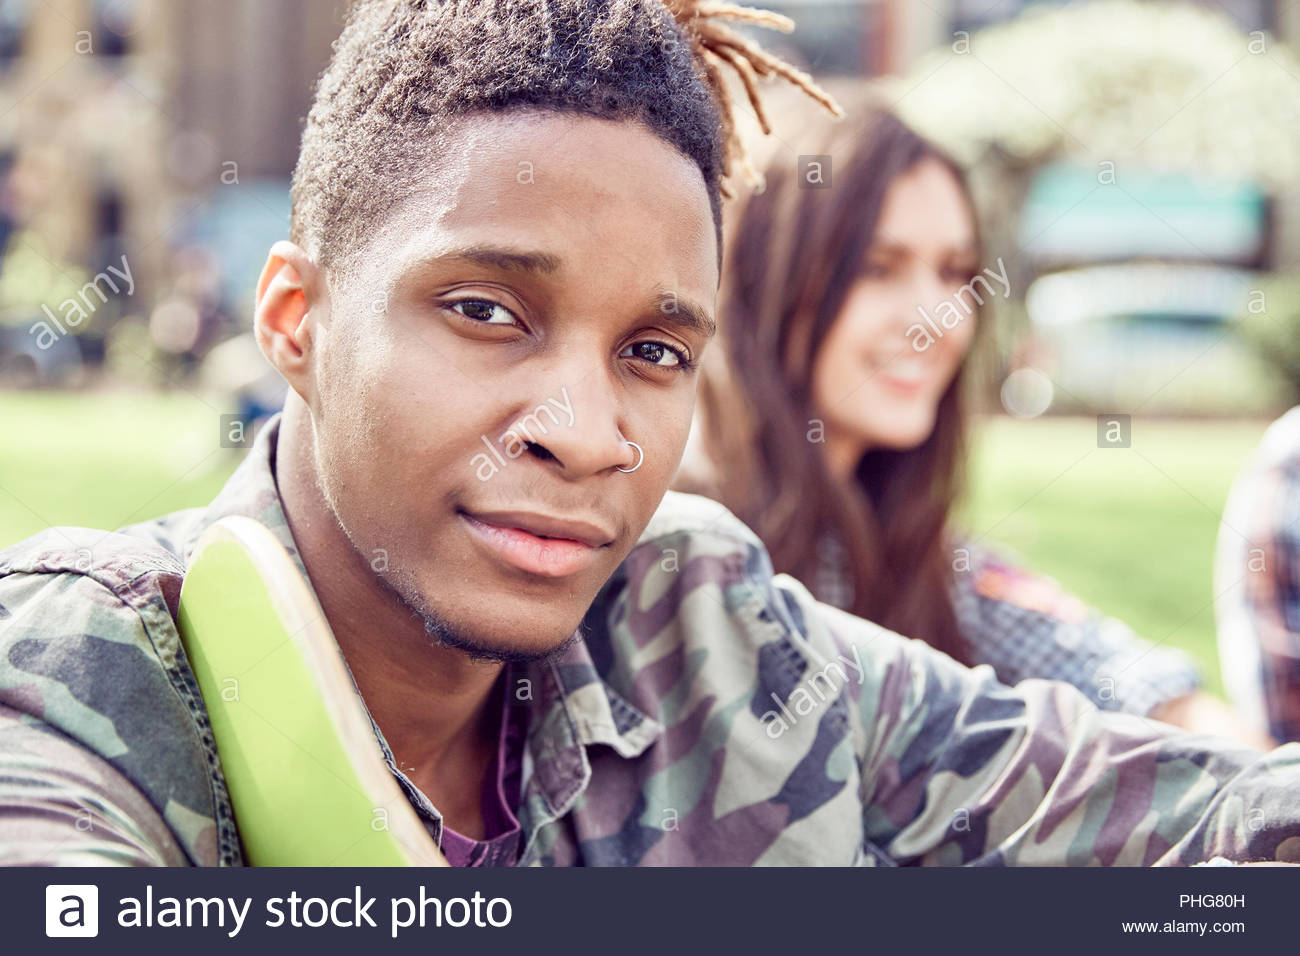 Portrait of teenage boy Photo Stock